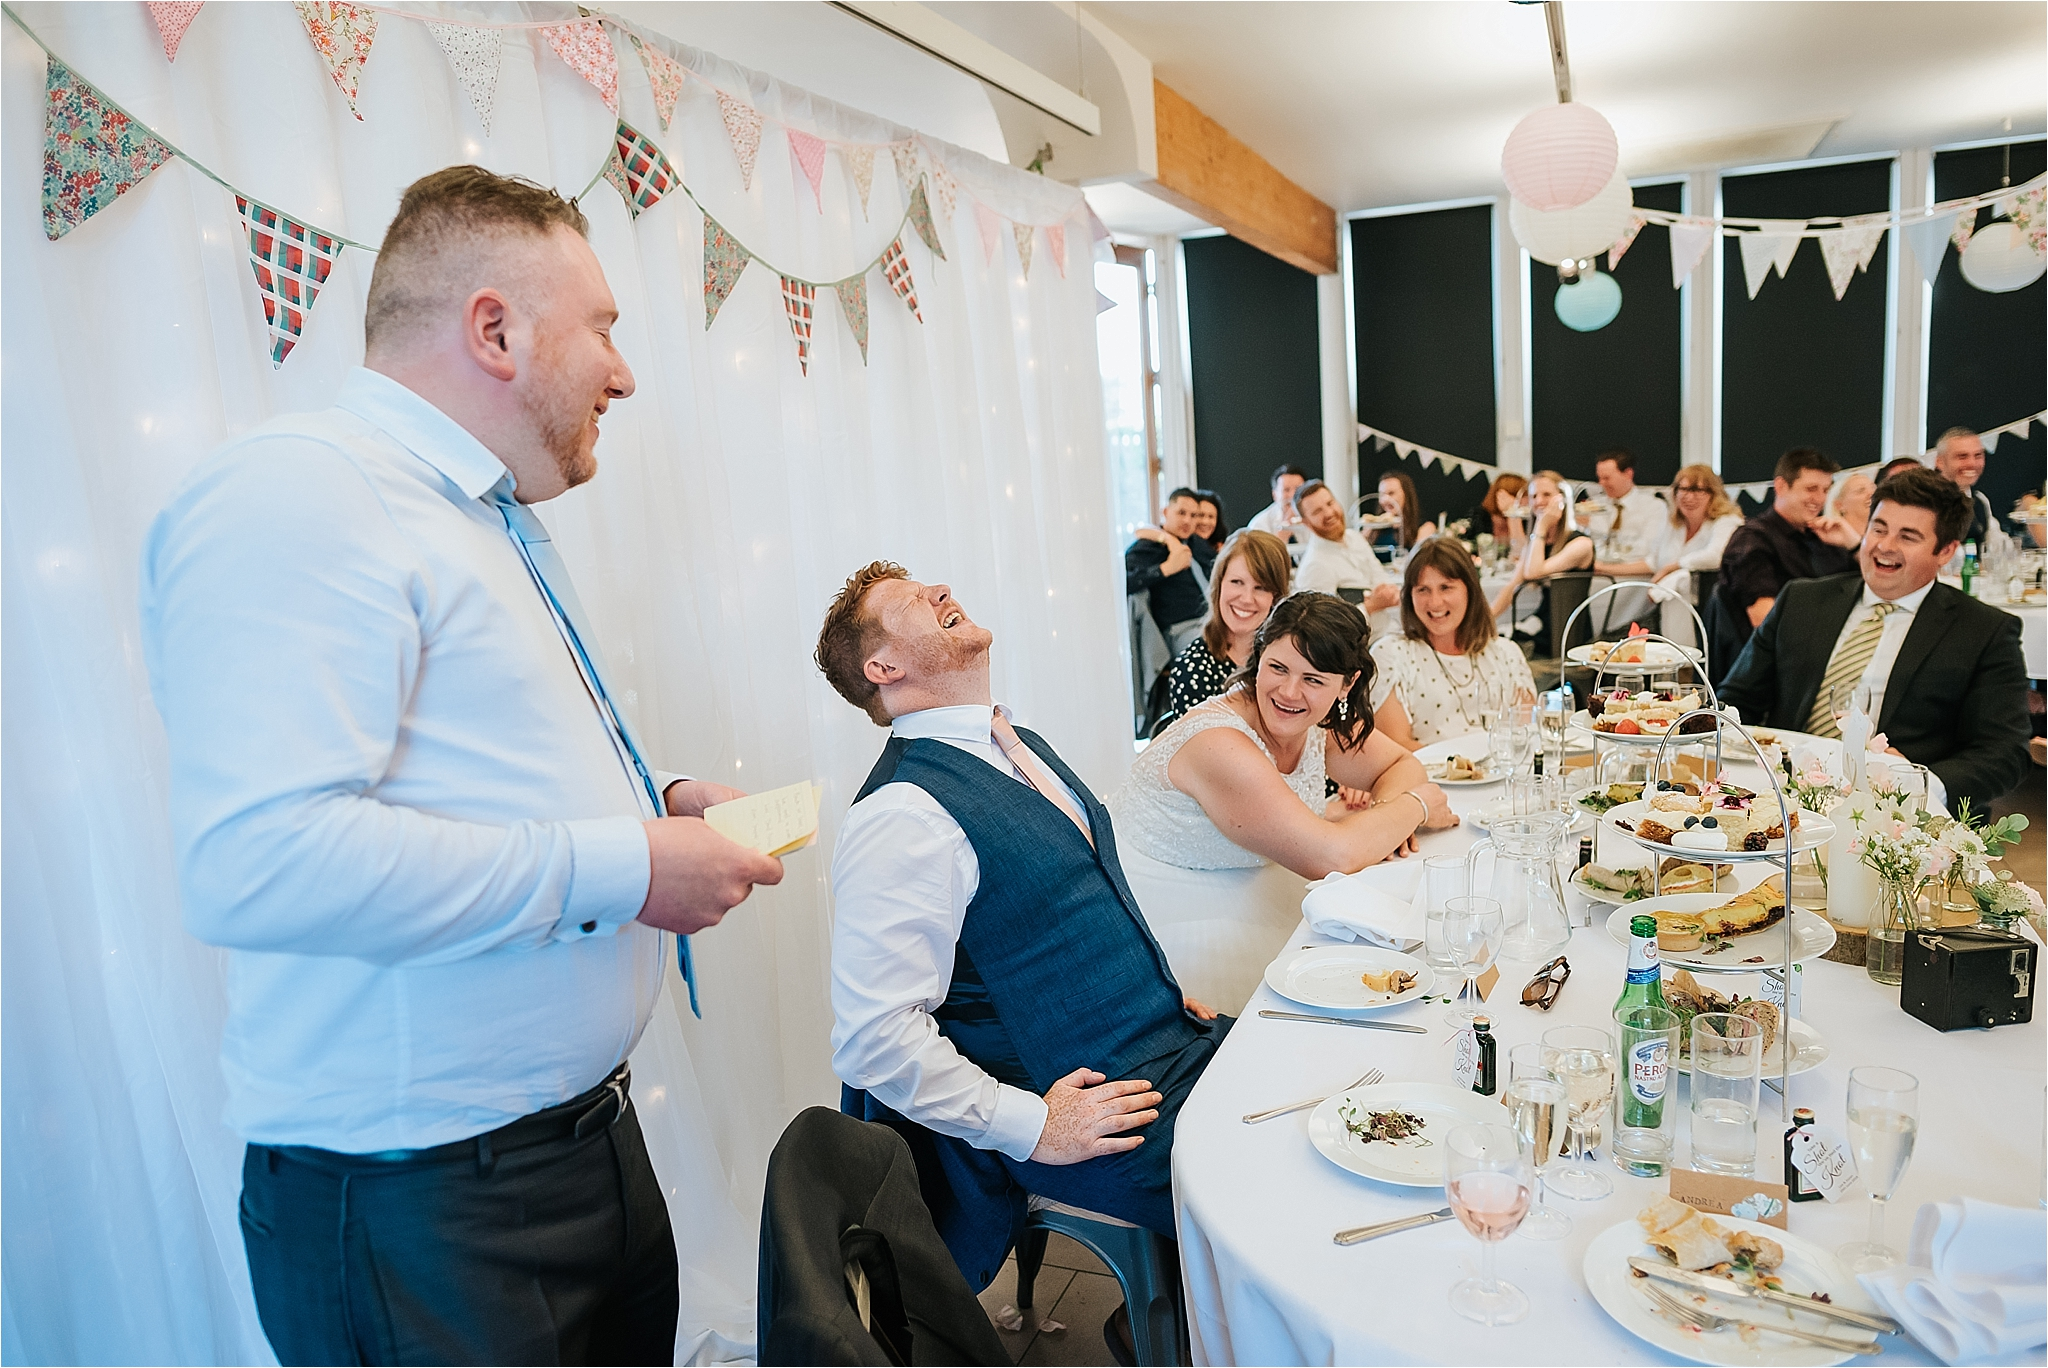 Best man gives his speech at wedding